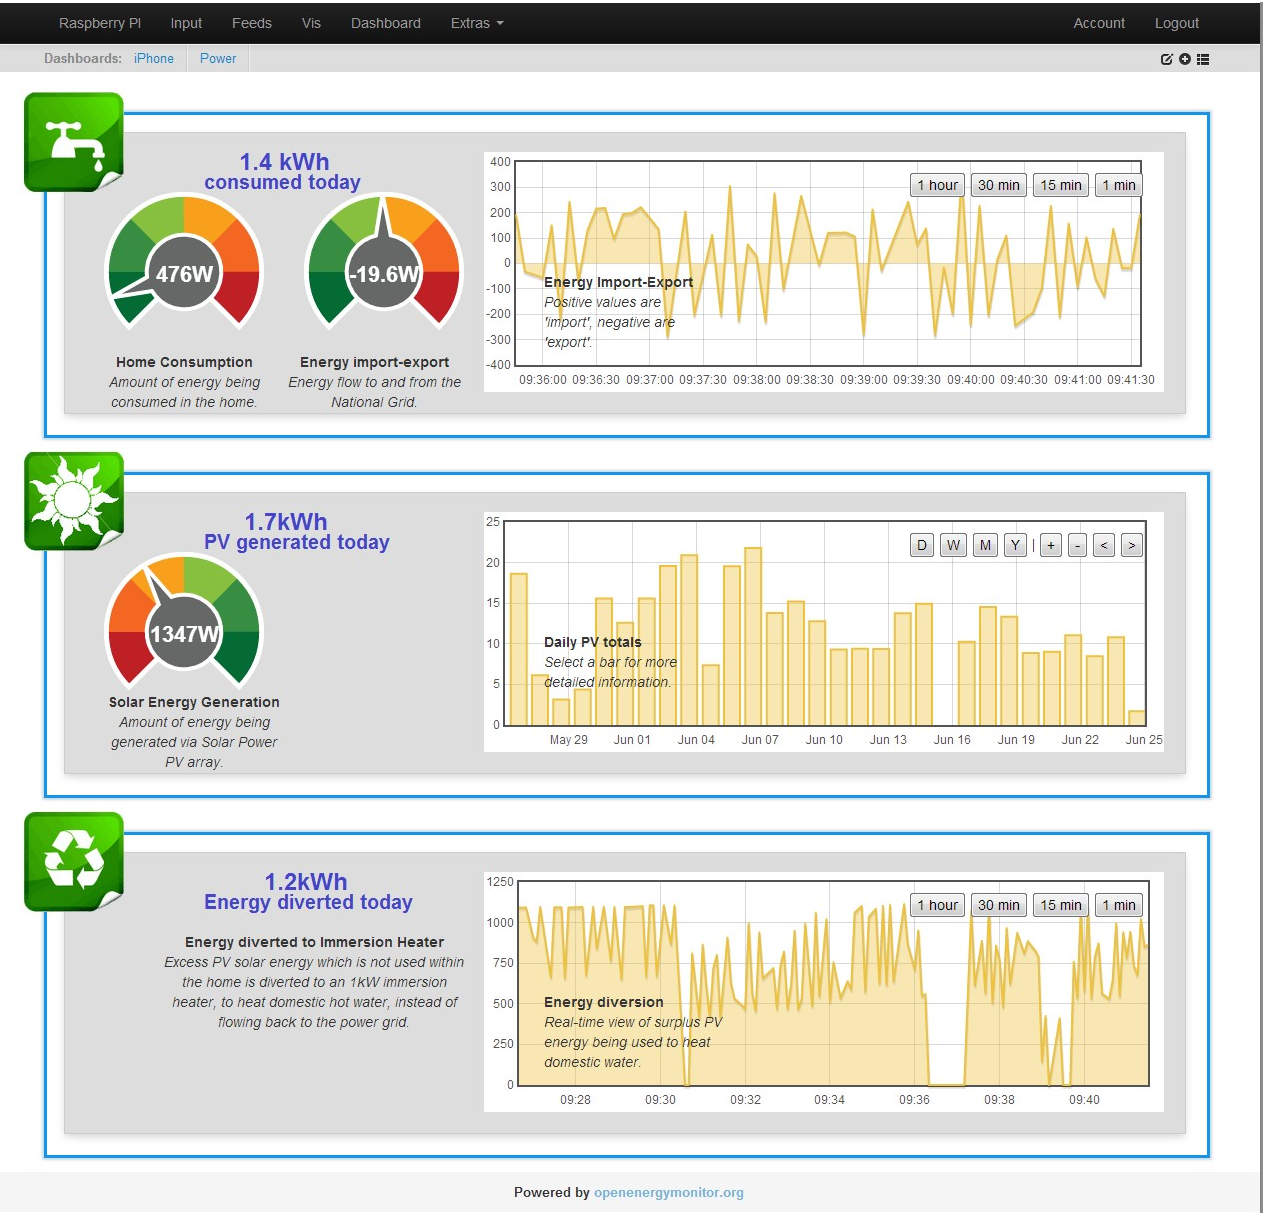 Great emoncms dashboards by Paul Reed, Jürgen and Tom + update on